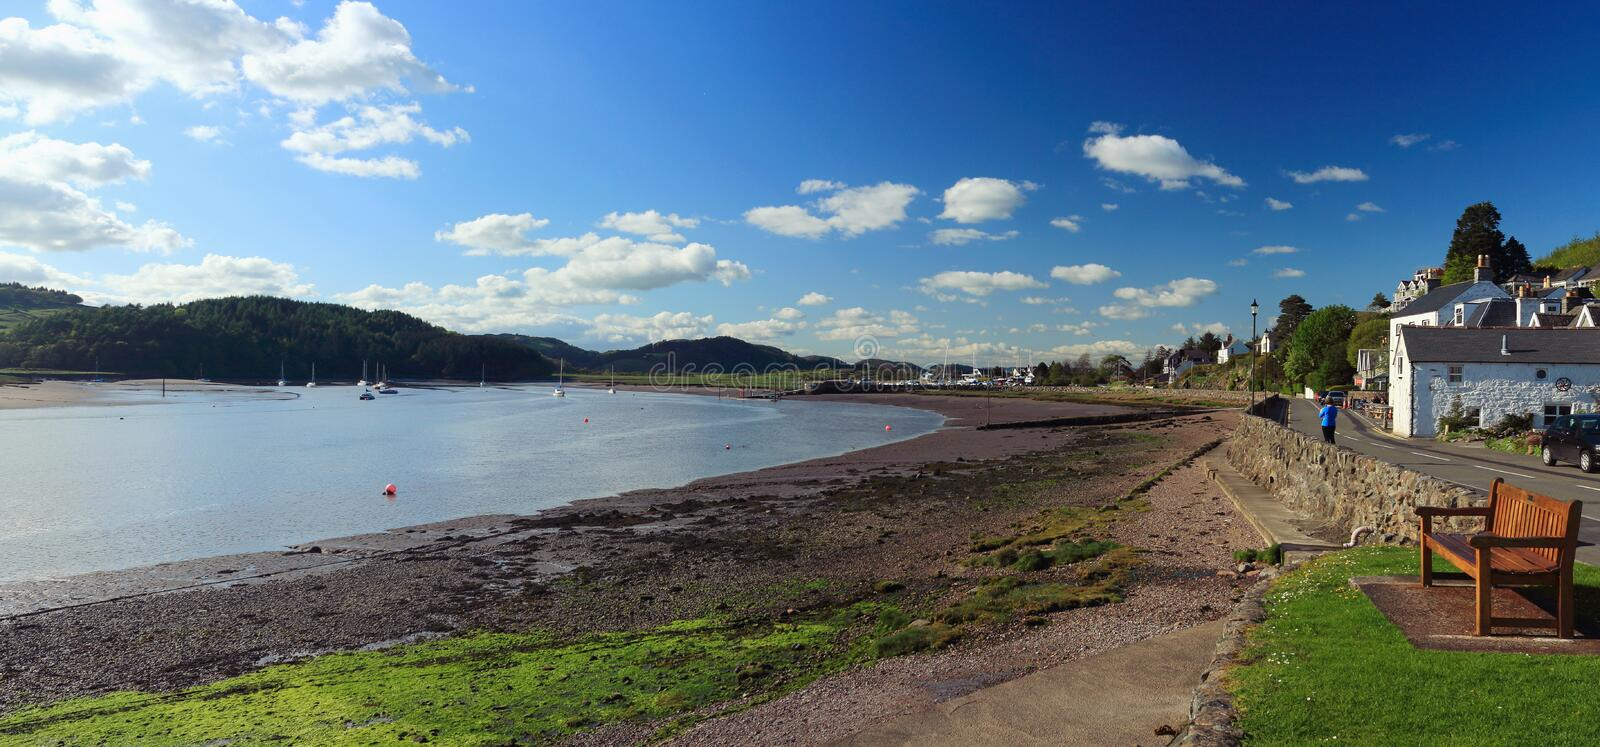 Kippford at Urr Water Estuary, Dumfries and Galloway, Scotland, United Kingdom. The Victorian houses along the main street of Kippford along the Urr Water stock image